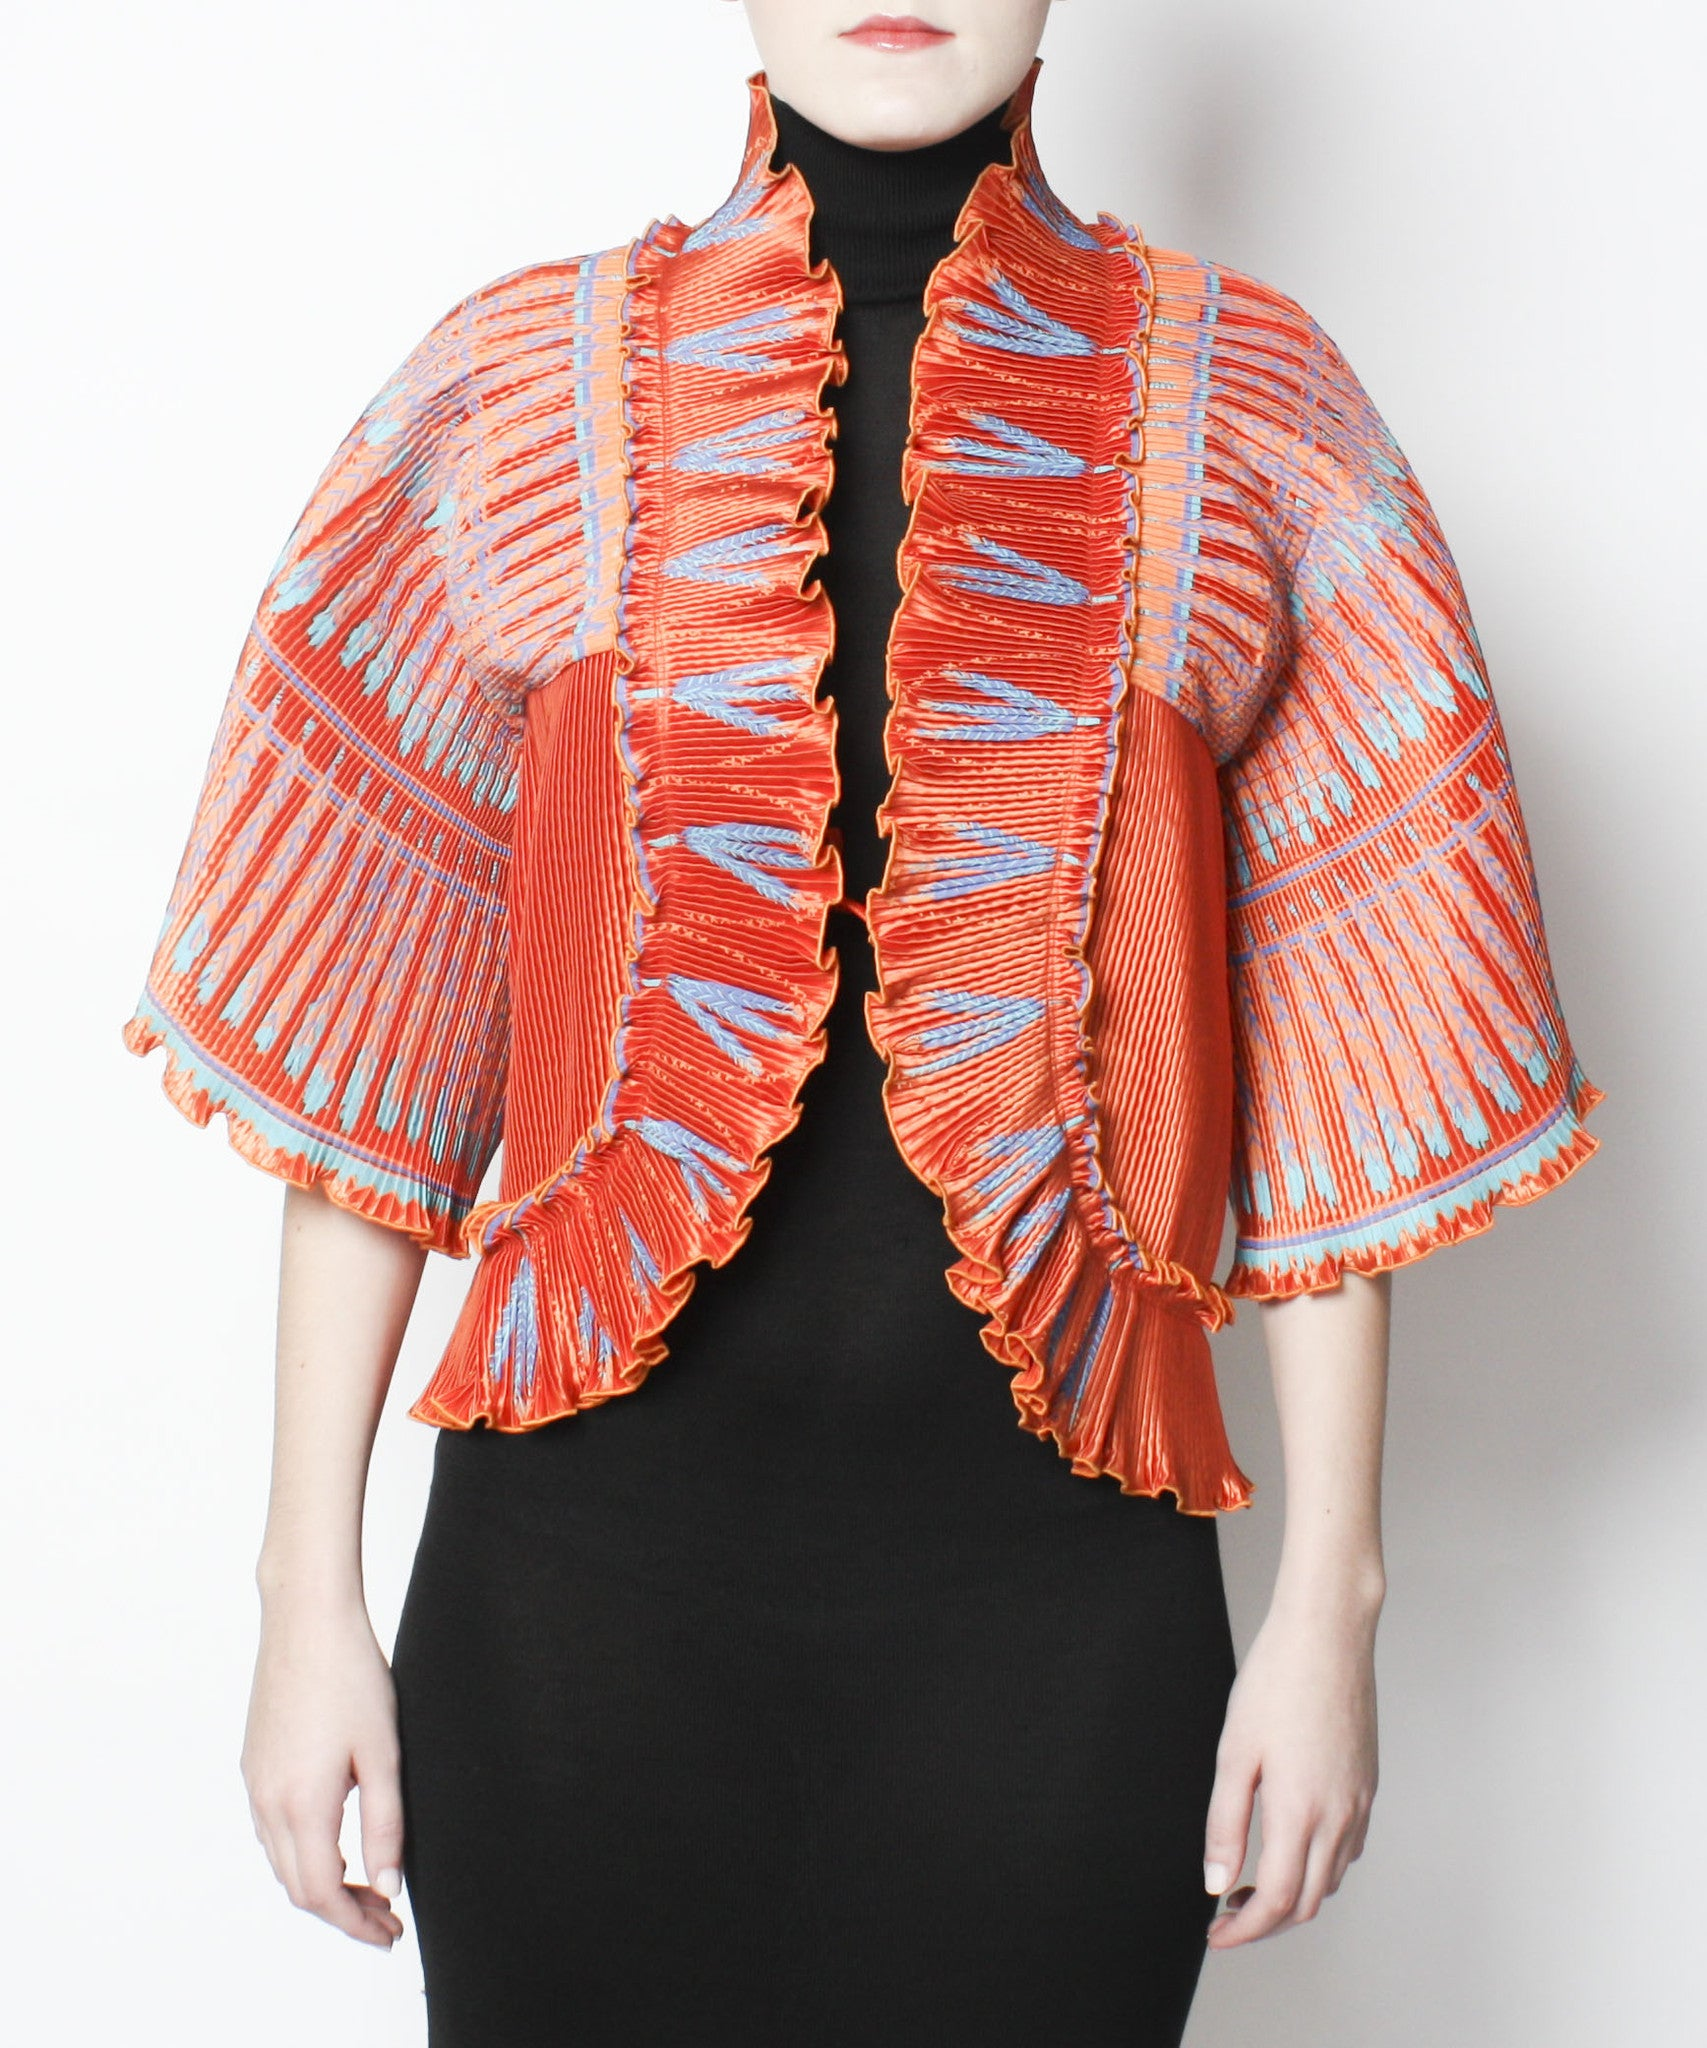 Zandra Rhodes Ayers Rock Collection 1980s Silkscreened Pleated Jacket